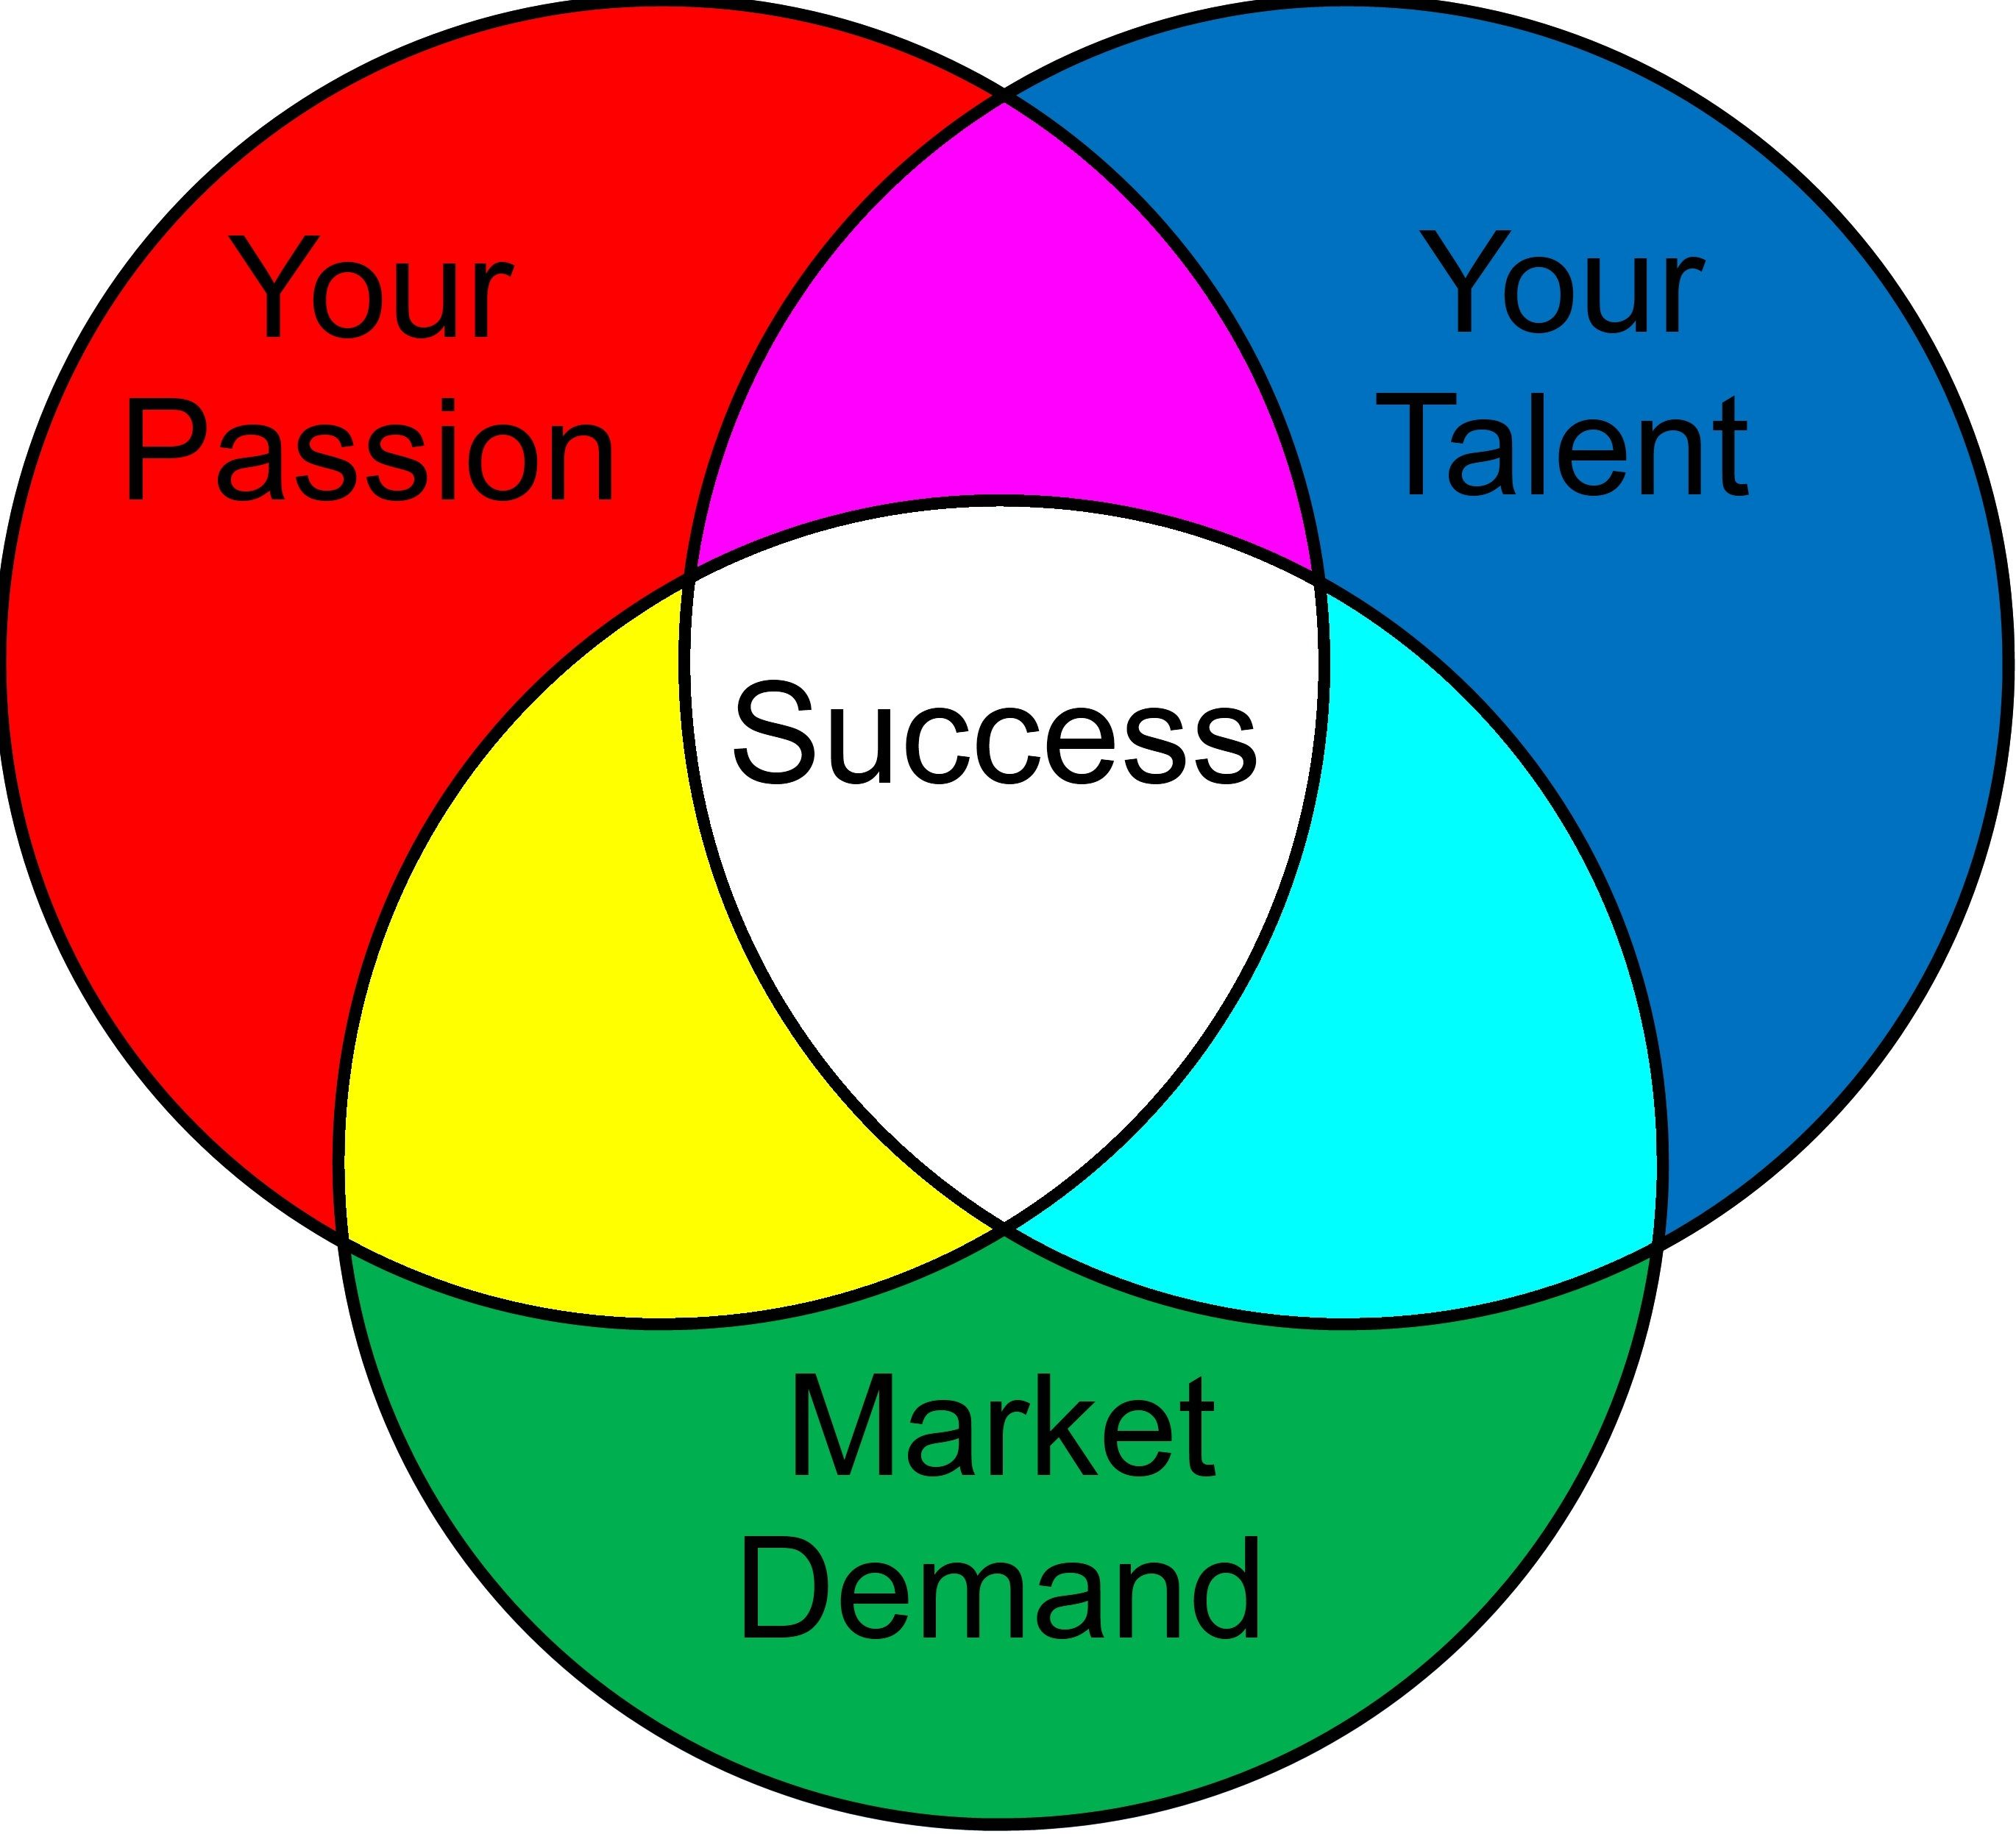 Good Use Of Venn Diagram On Passion Talent And Market